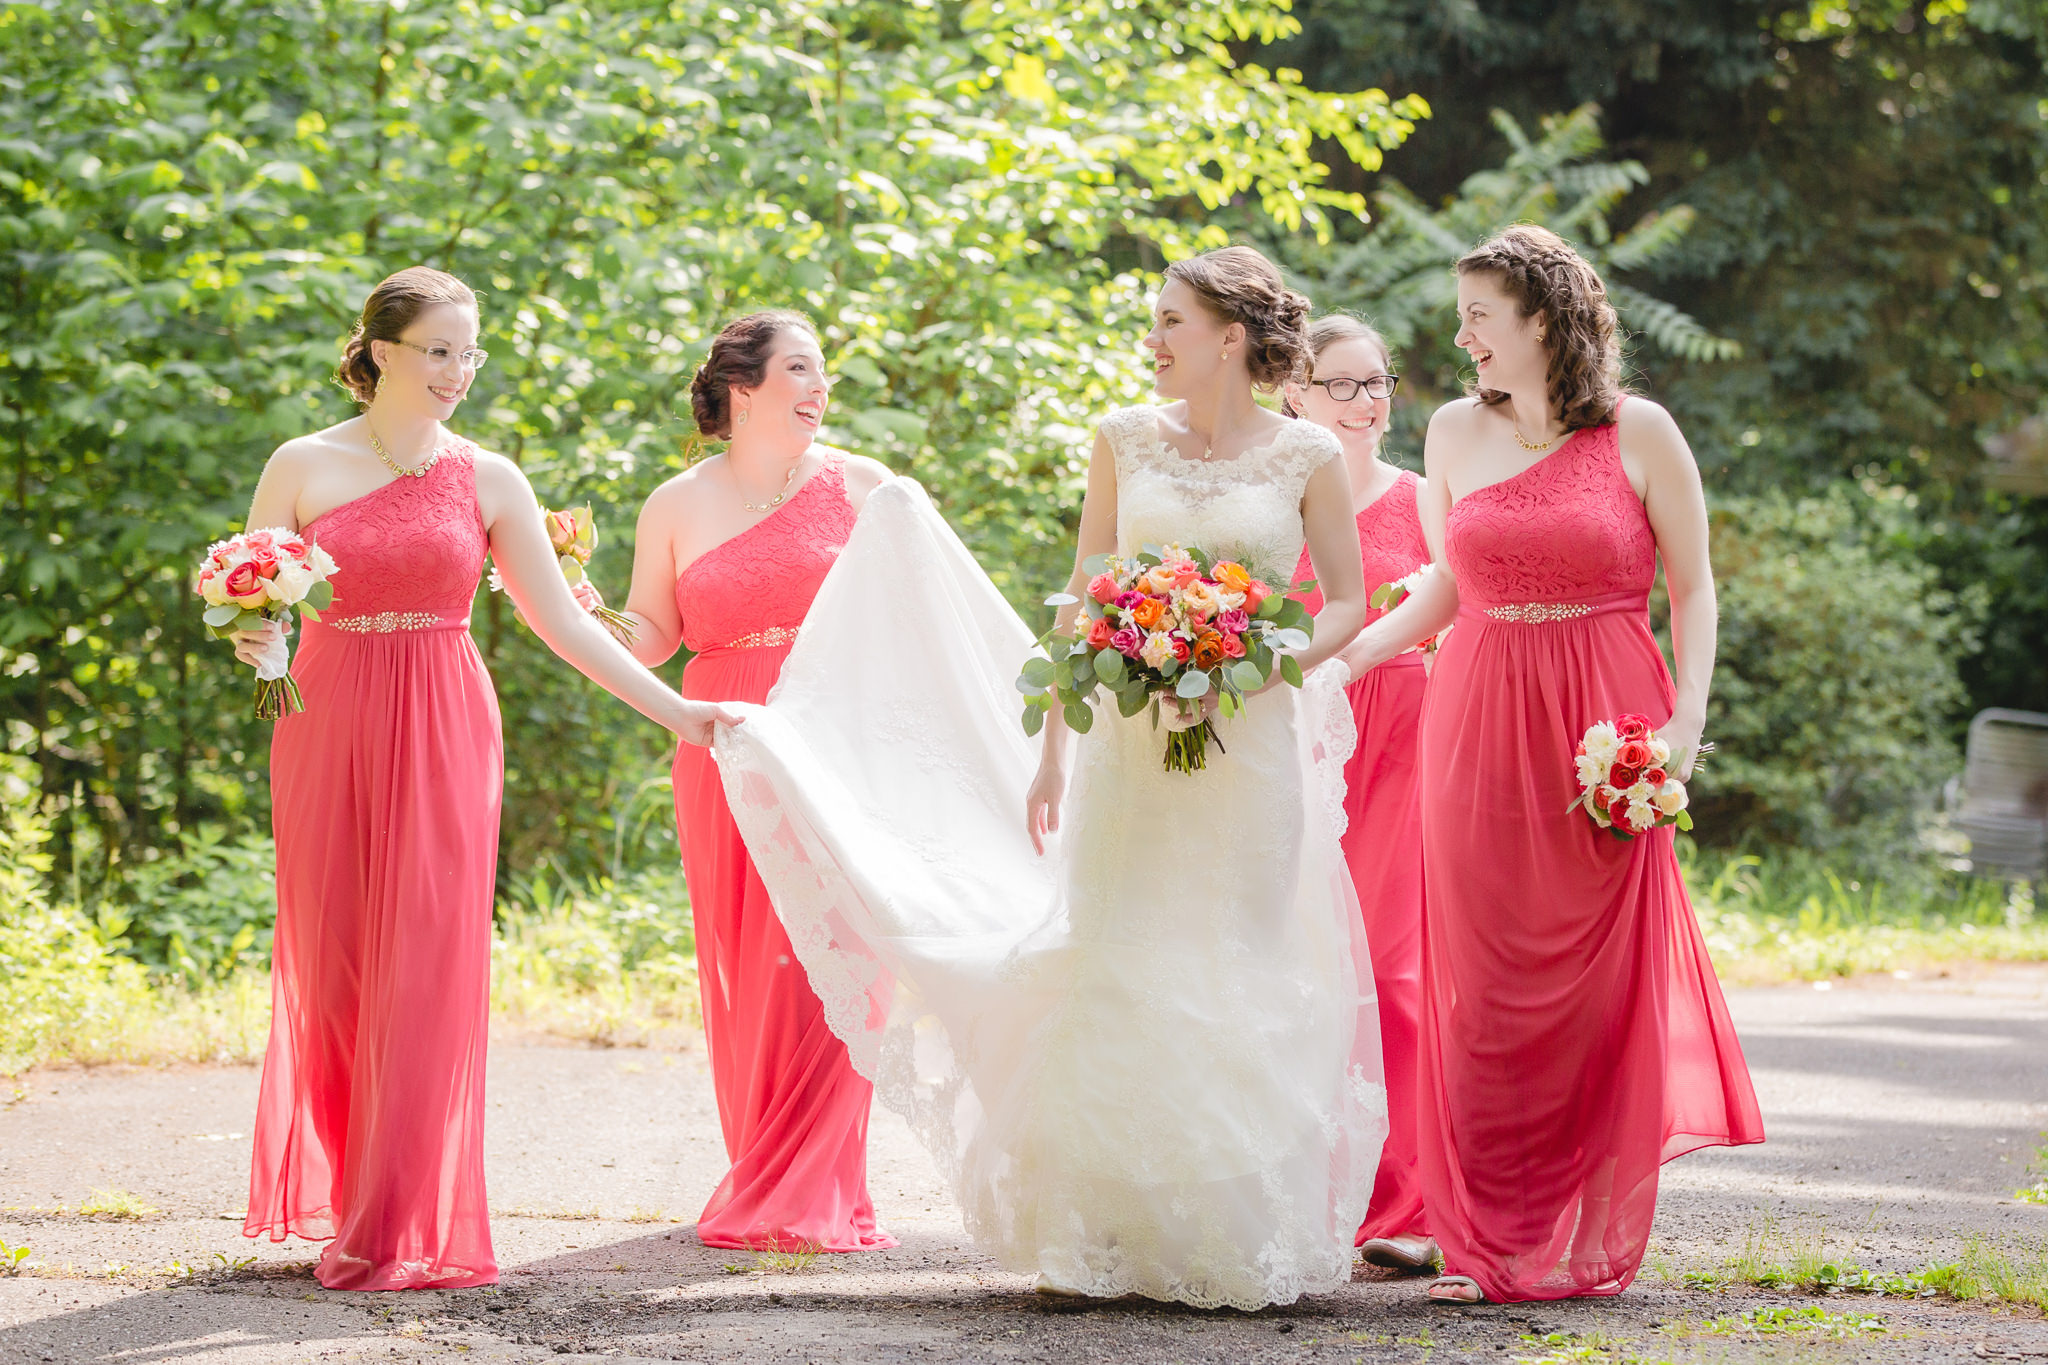 Bridesmaids walking with bride at Shannopin Country Club